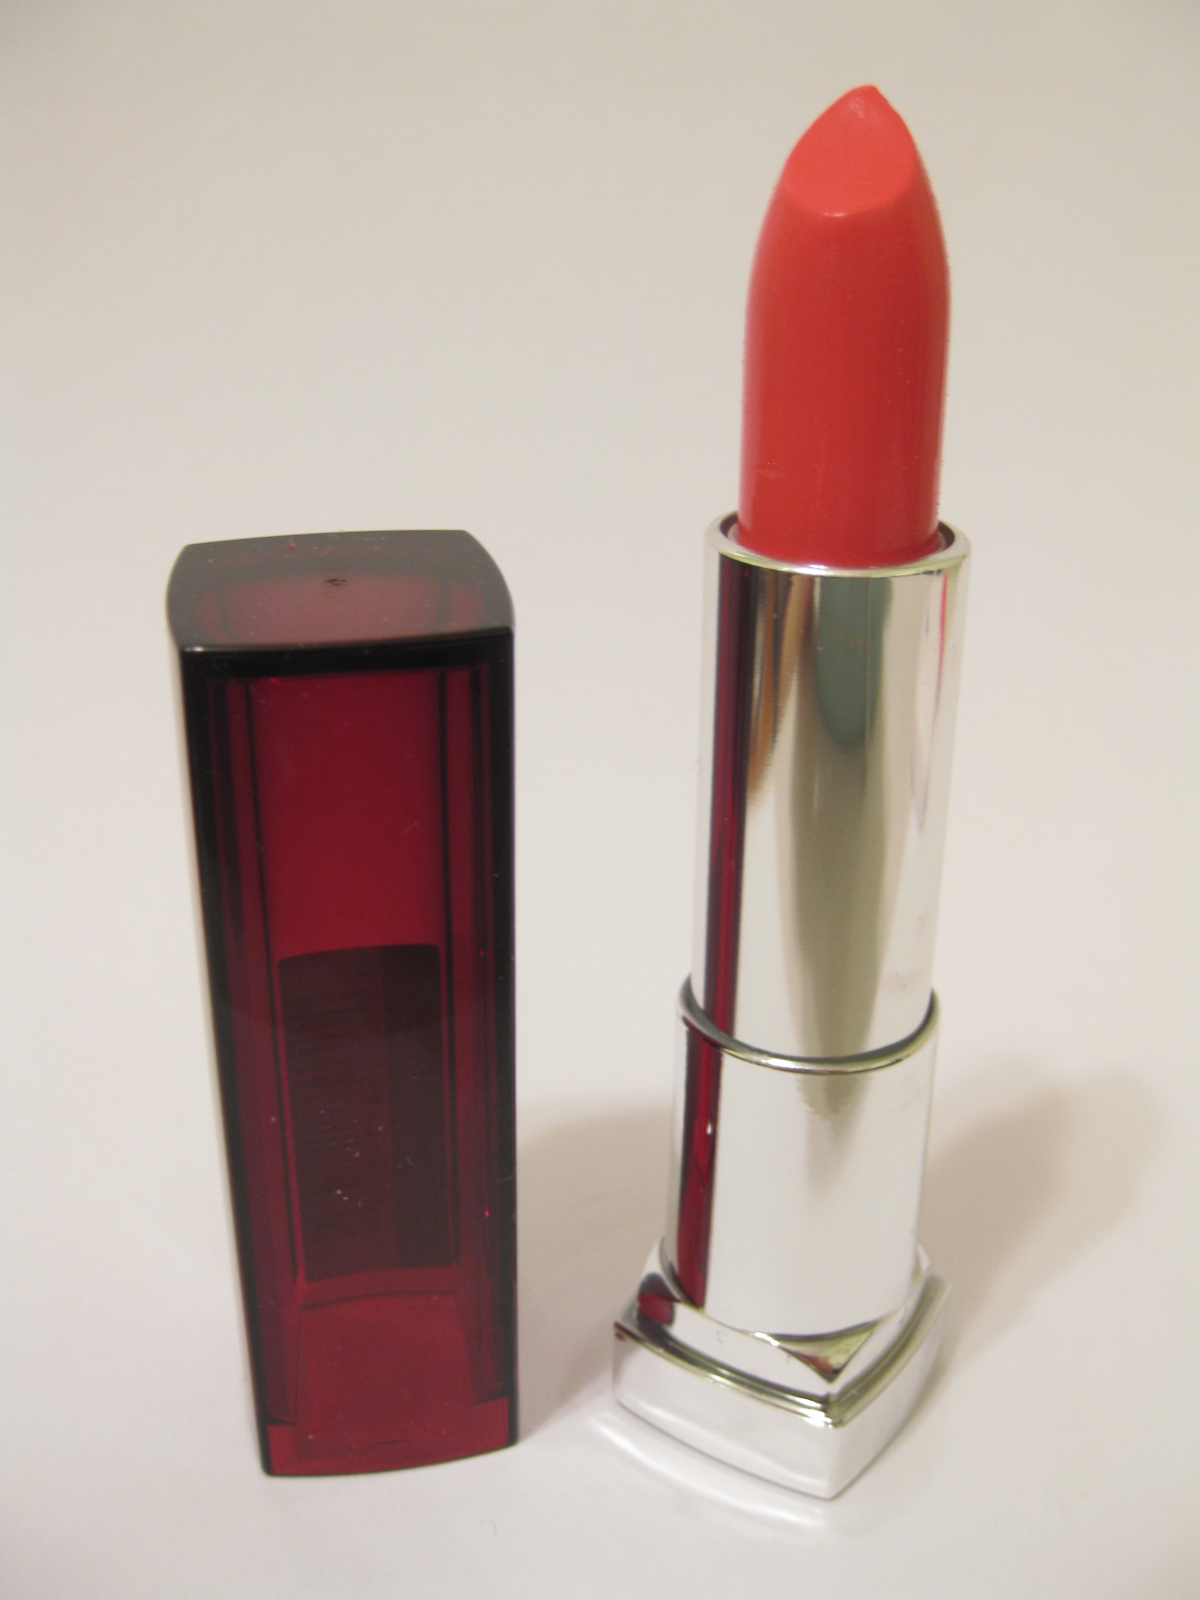 Kalifornia Love Maybelline Color Sensational Lipstick In Coral Lipstik Crush Review Swatches